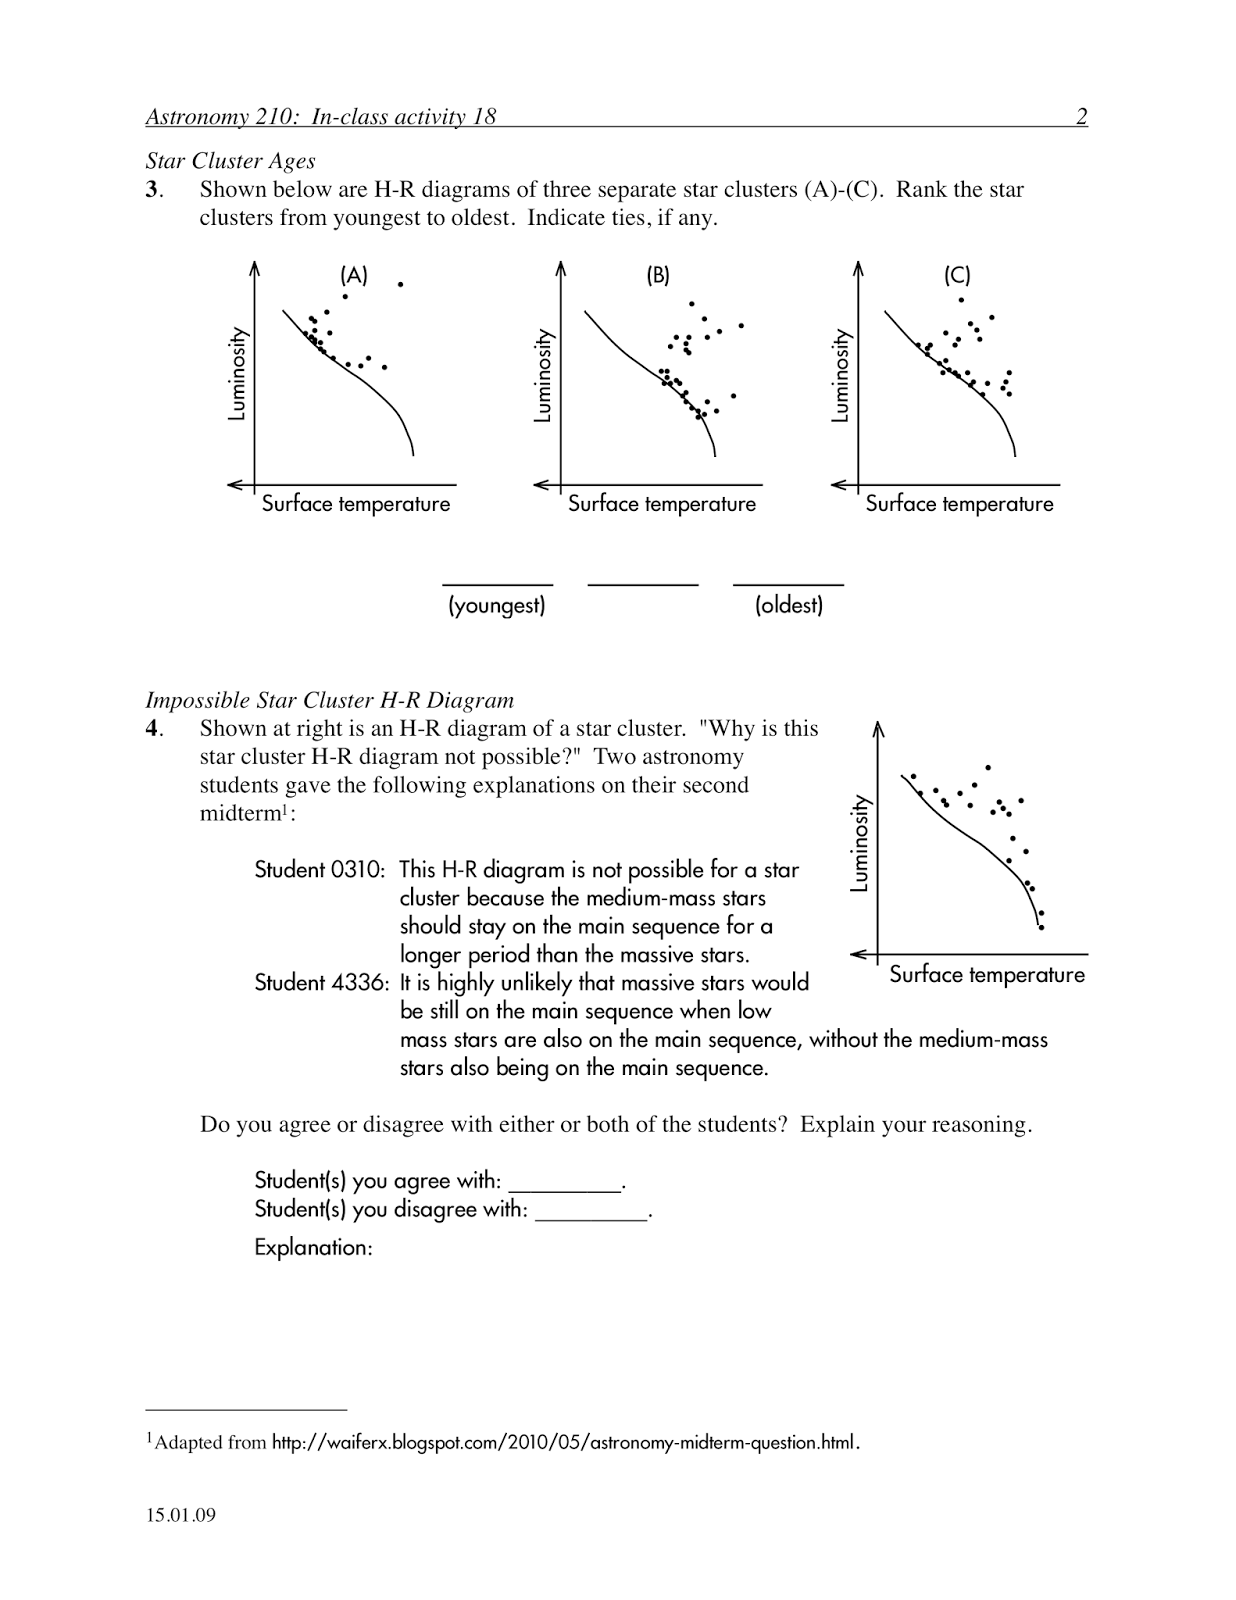 on an in class activity worksheet on comparing evolution rates of different mass stars and ranking relative star cluster ages given their h r diagrams  [ 1236 x 1600 Pixel ]